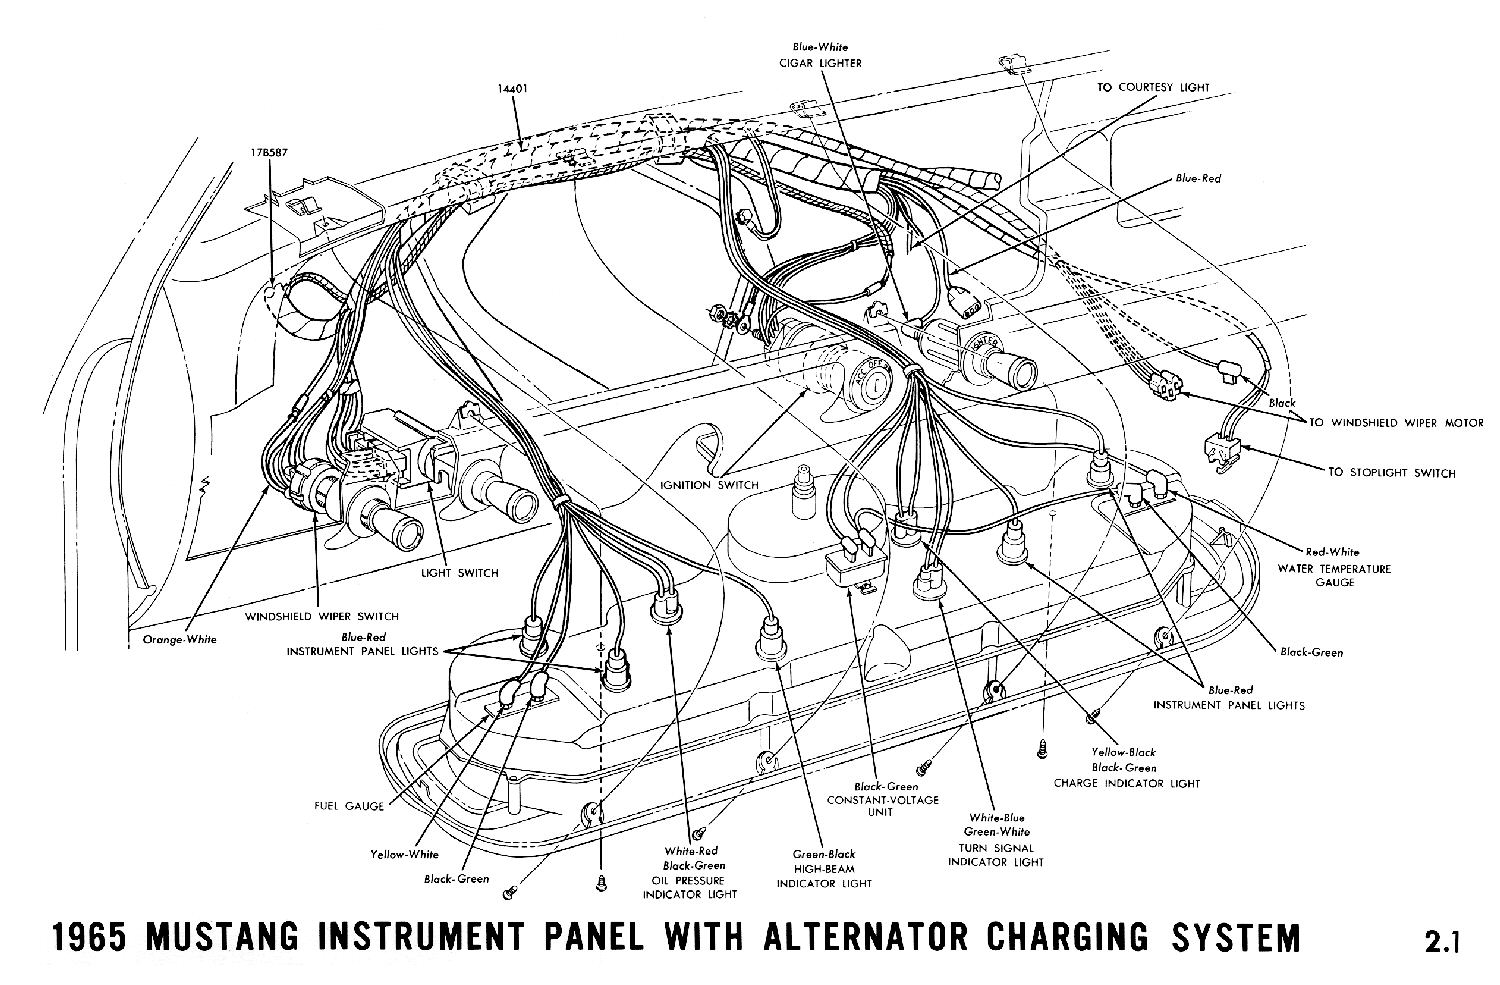 hight resolution of 1965 mustang wiring diagrams average joe restoration rh averagejoerestoration com 1965 ford mustang ignition switch wiring diagram 65 mustang ignition